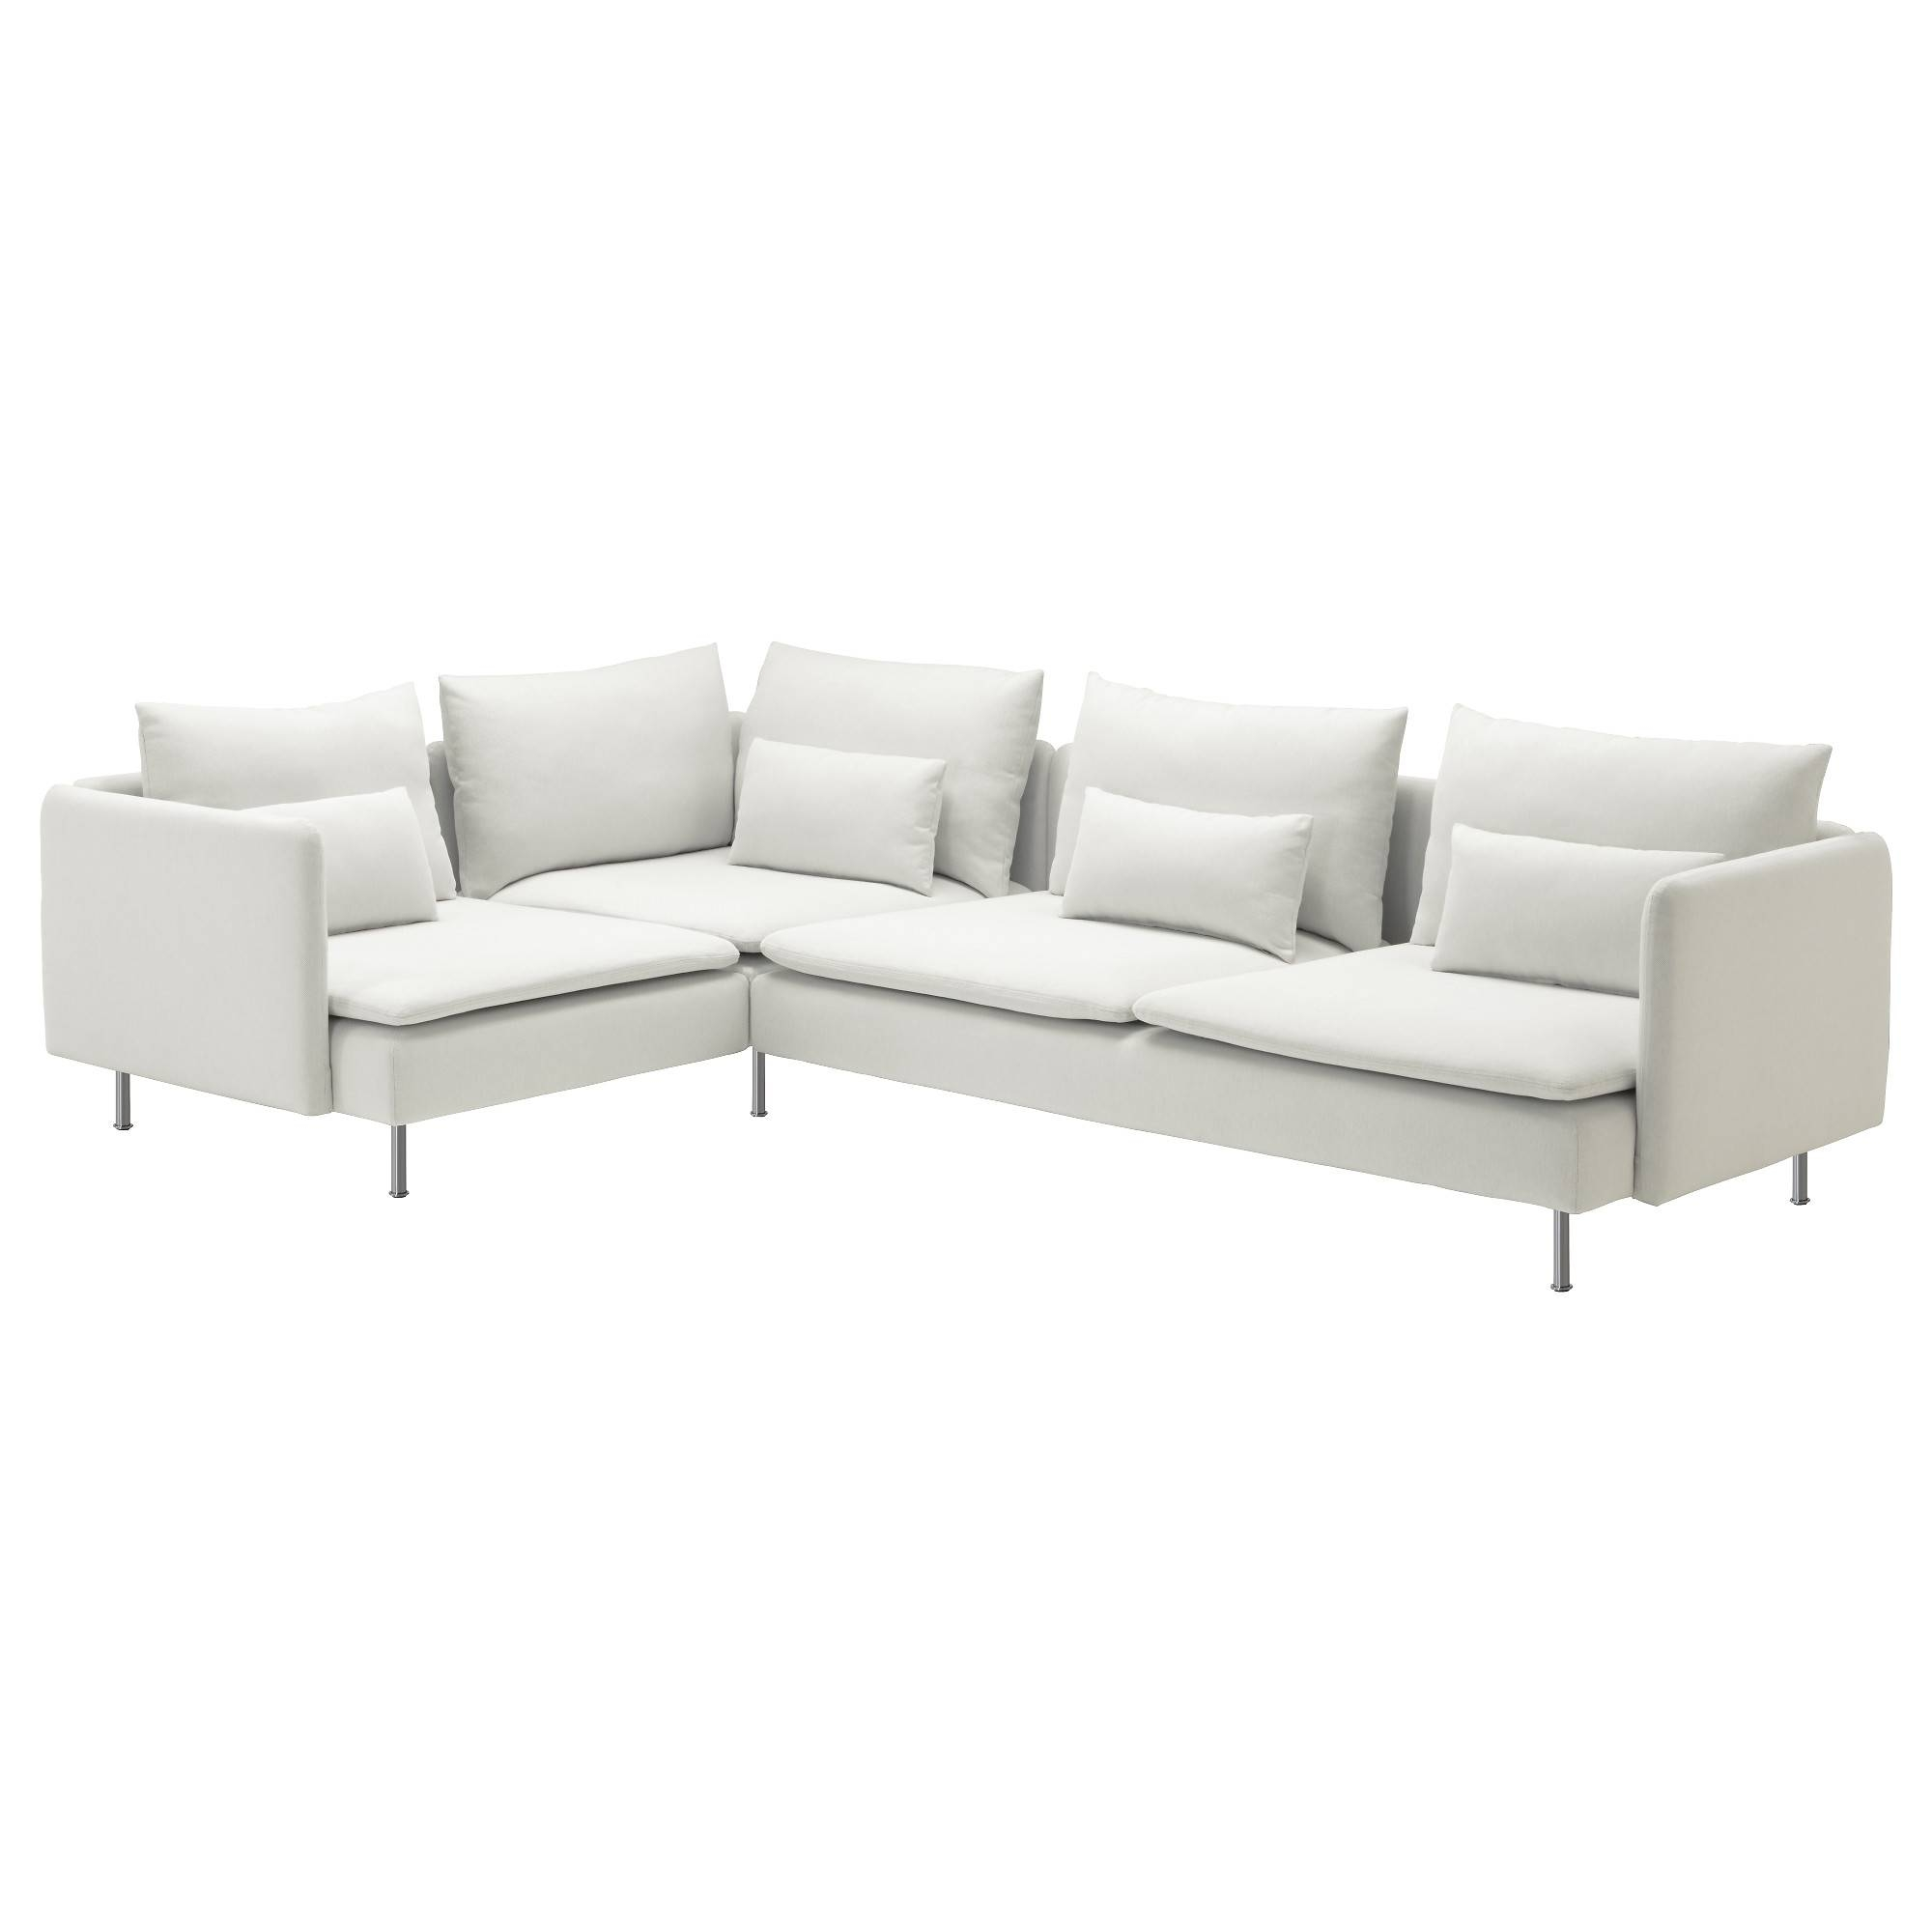 Sectional Sofas & Couches - Ikea intended for Ikea Sectional Sofa Bed (Image 15 of 25)